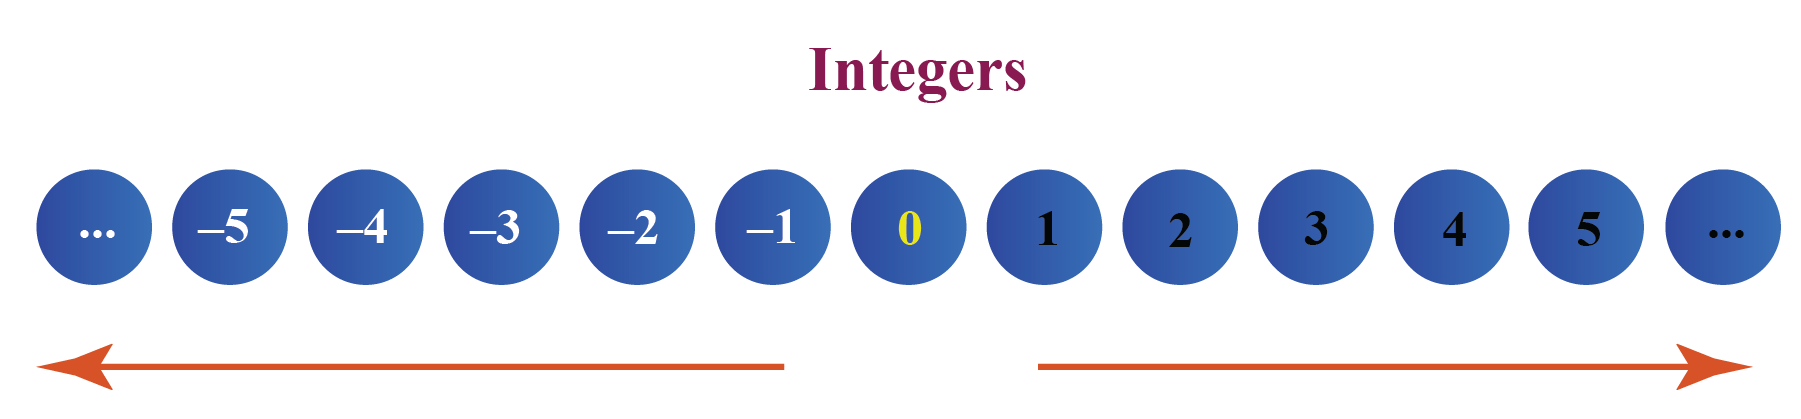 integers even and odd integers